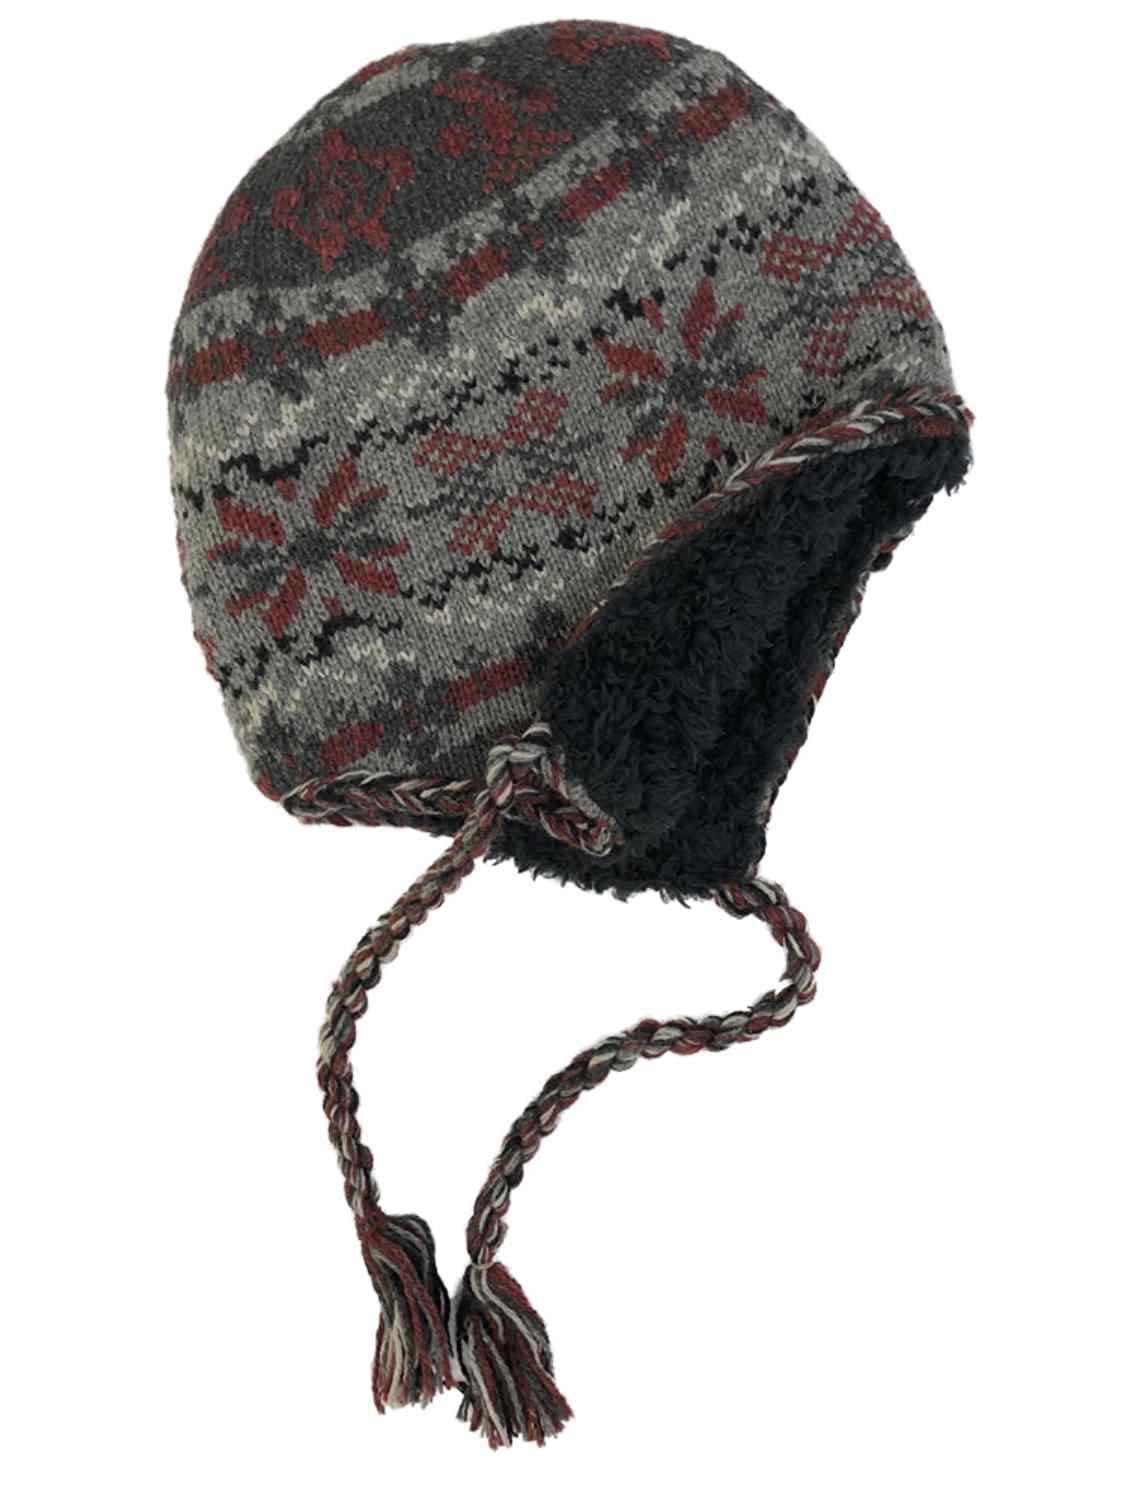 d67b3dac6a9bf Get Quotations · Outdoor Life Mens Gray   Red Snowflake Peruvian Style Wool  Blend Trapper Hat Sherpa Lined